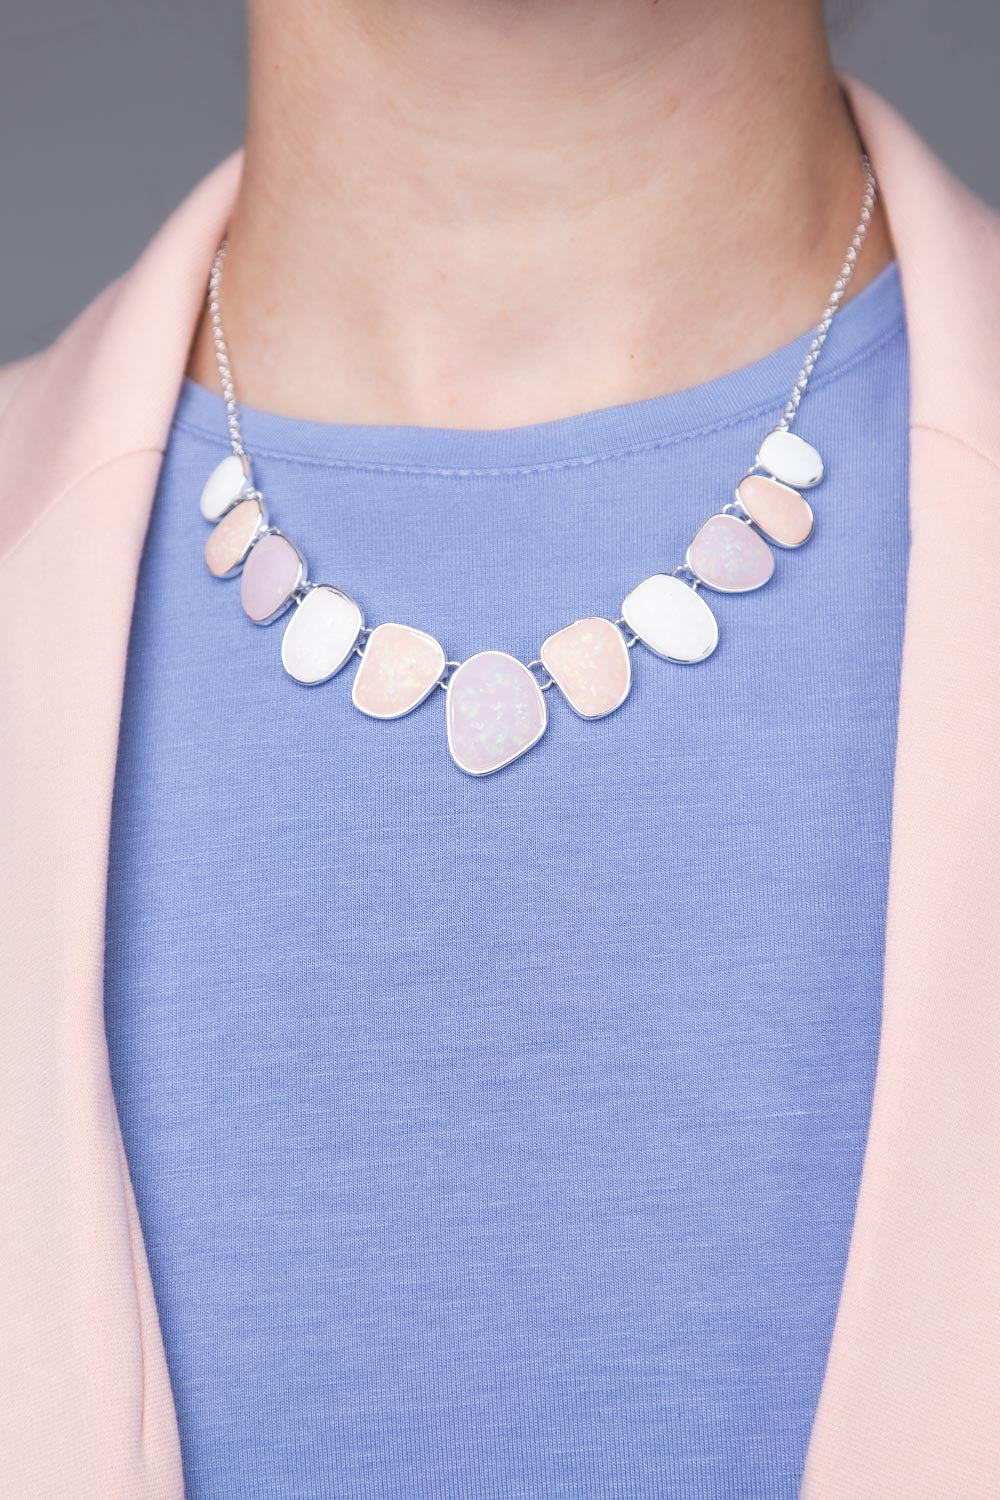 Type 2 Pebbled Path Necklace/Earring set